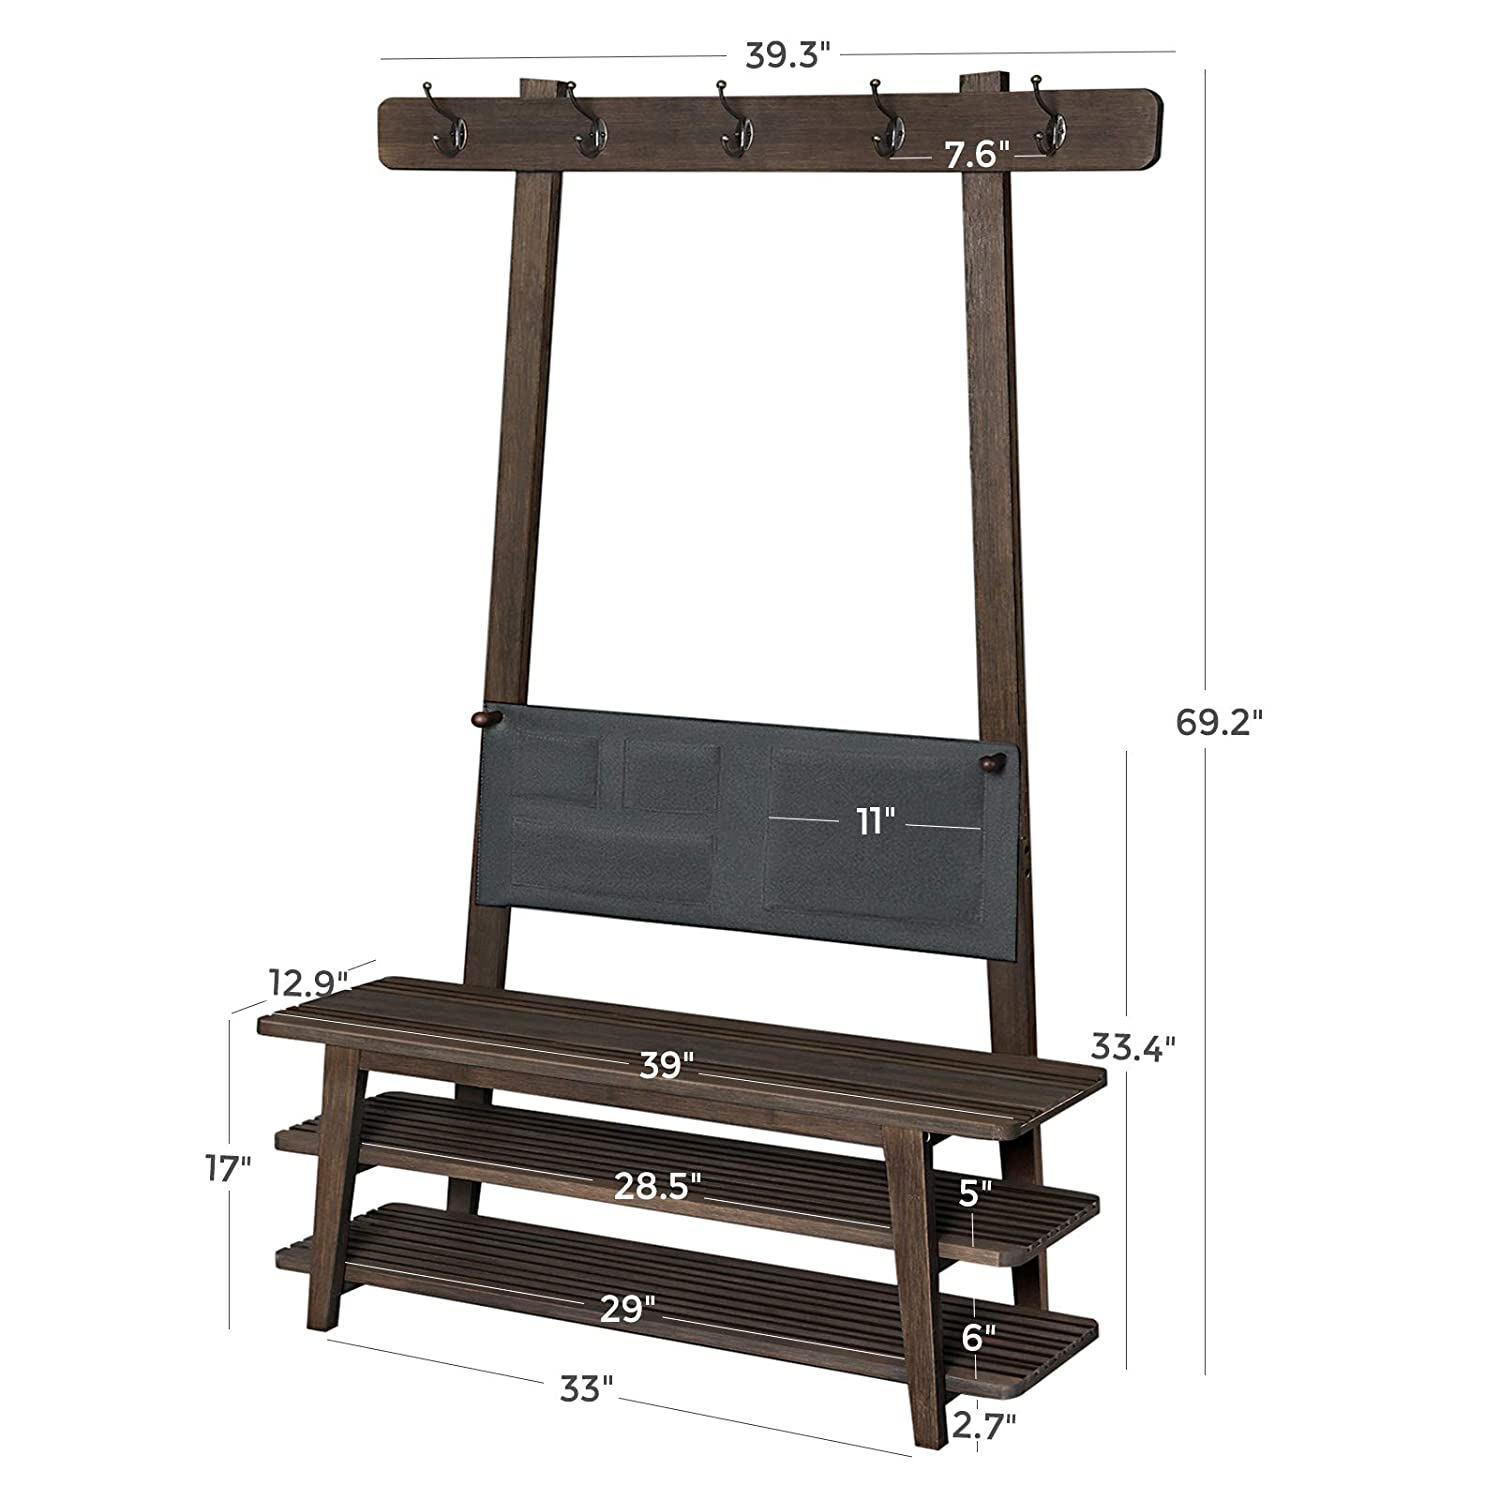 Storage Organizer in Tower Design Stable Shoe Rack for Entryway Coat Rack with Storage Bag 39.4 x 13.2 x 69.7 Inches Living Room VASAGLE Bamboo Hall Tree Bedroom Walnut Color ULHT100WN